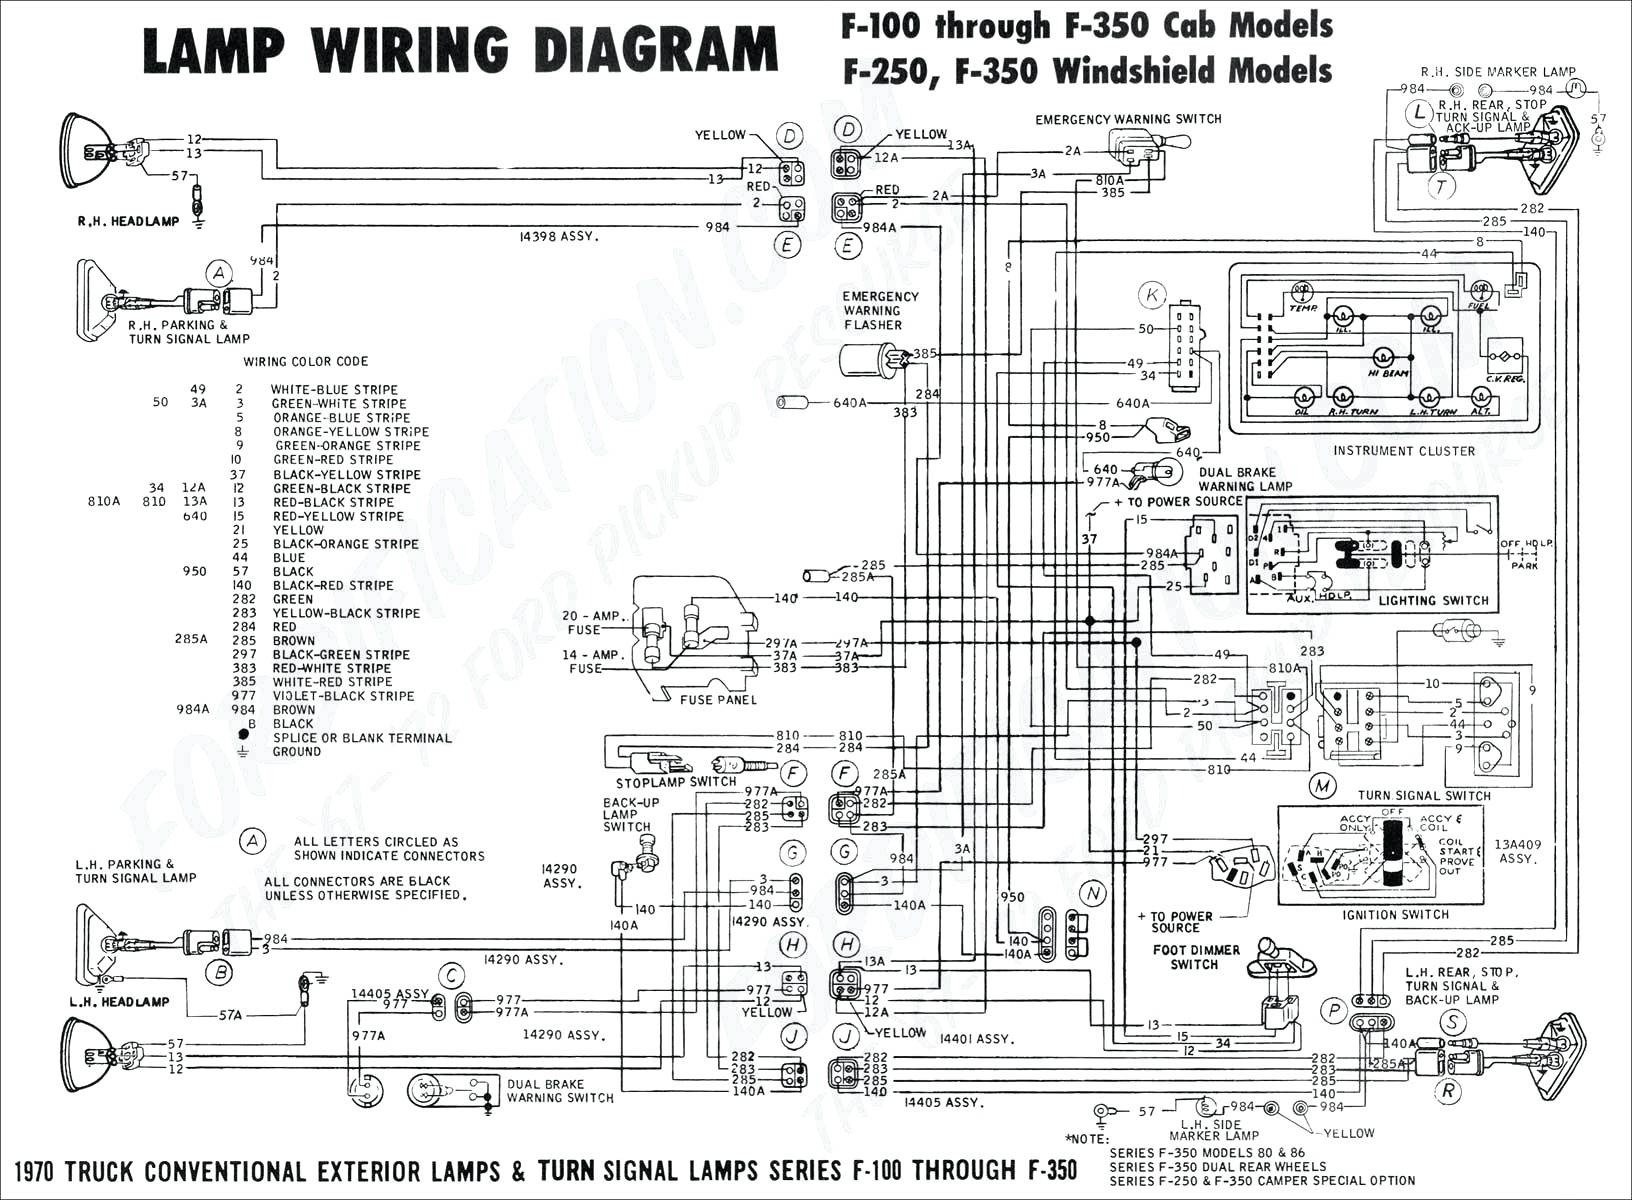 indeeco duct heater wiring diagram Collection-Ford F350 Trailer Wiring Diagram Sample 25 Great Electric Duct Heater Wiring Diagram 6-q